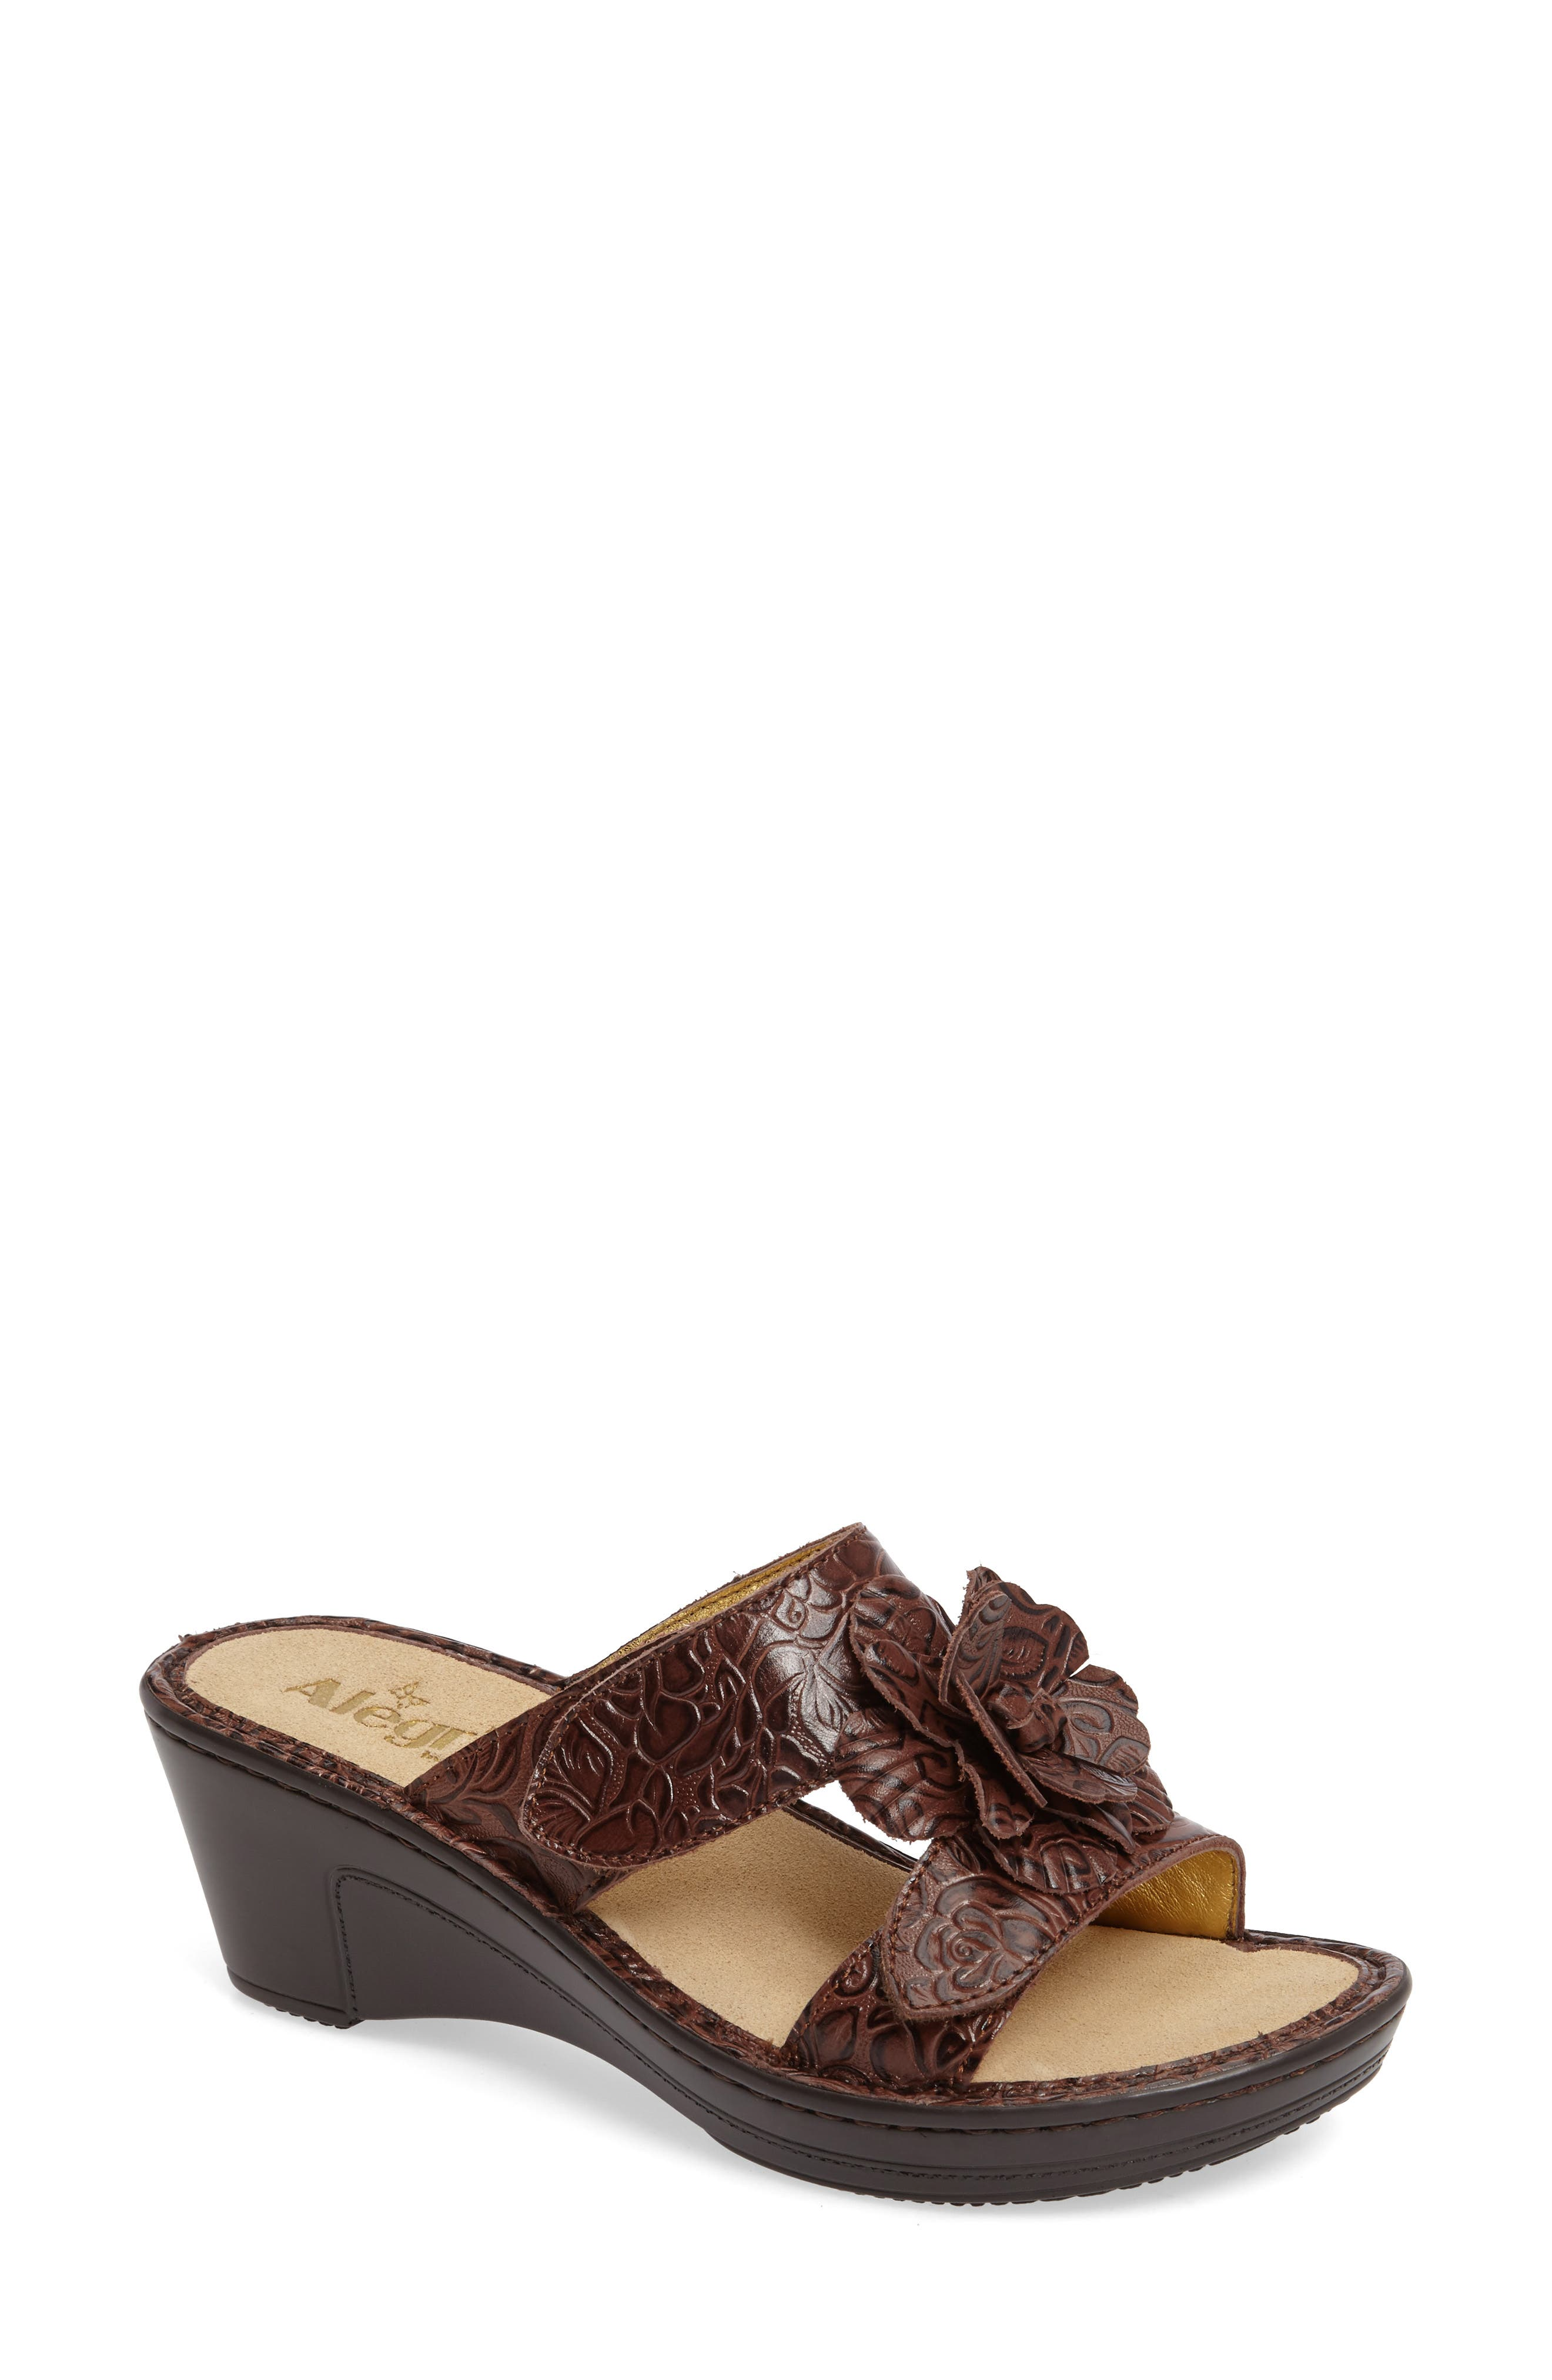 Alternate Image 1 Selected - Alegria Lana Sandal (Women)